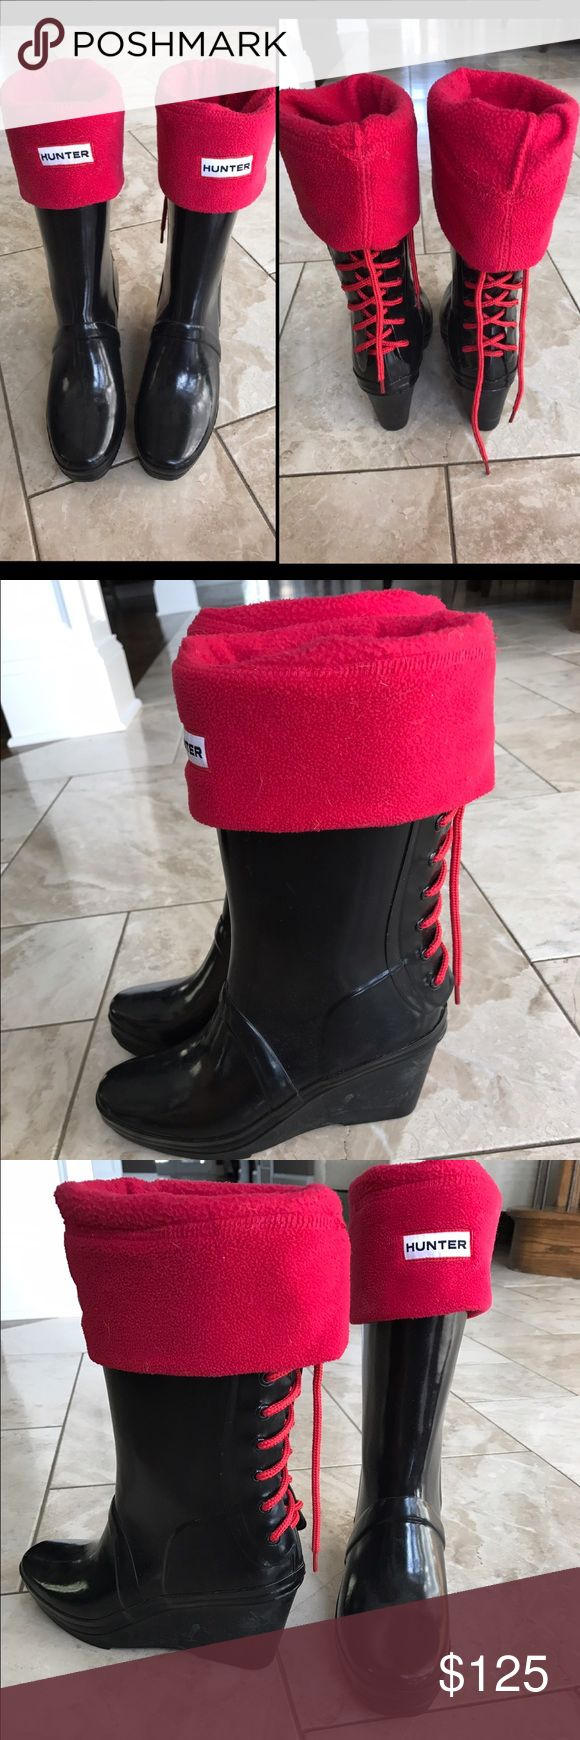 Lace up HUNTER wedge boots with socks Black gently worn hunter wedges.  Red lace up the back. Comes with red fleece hunter socks! Size 7F. No trades. Hunter Shoes Winter & Rain Boots